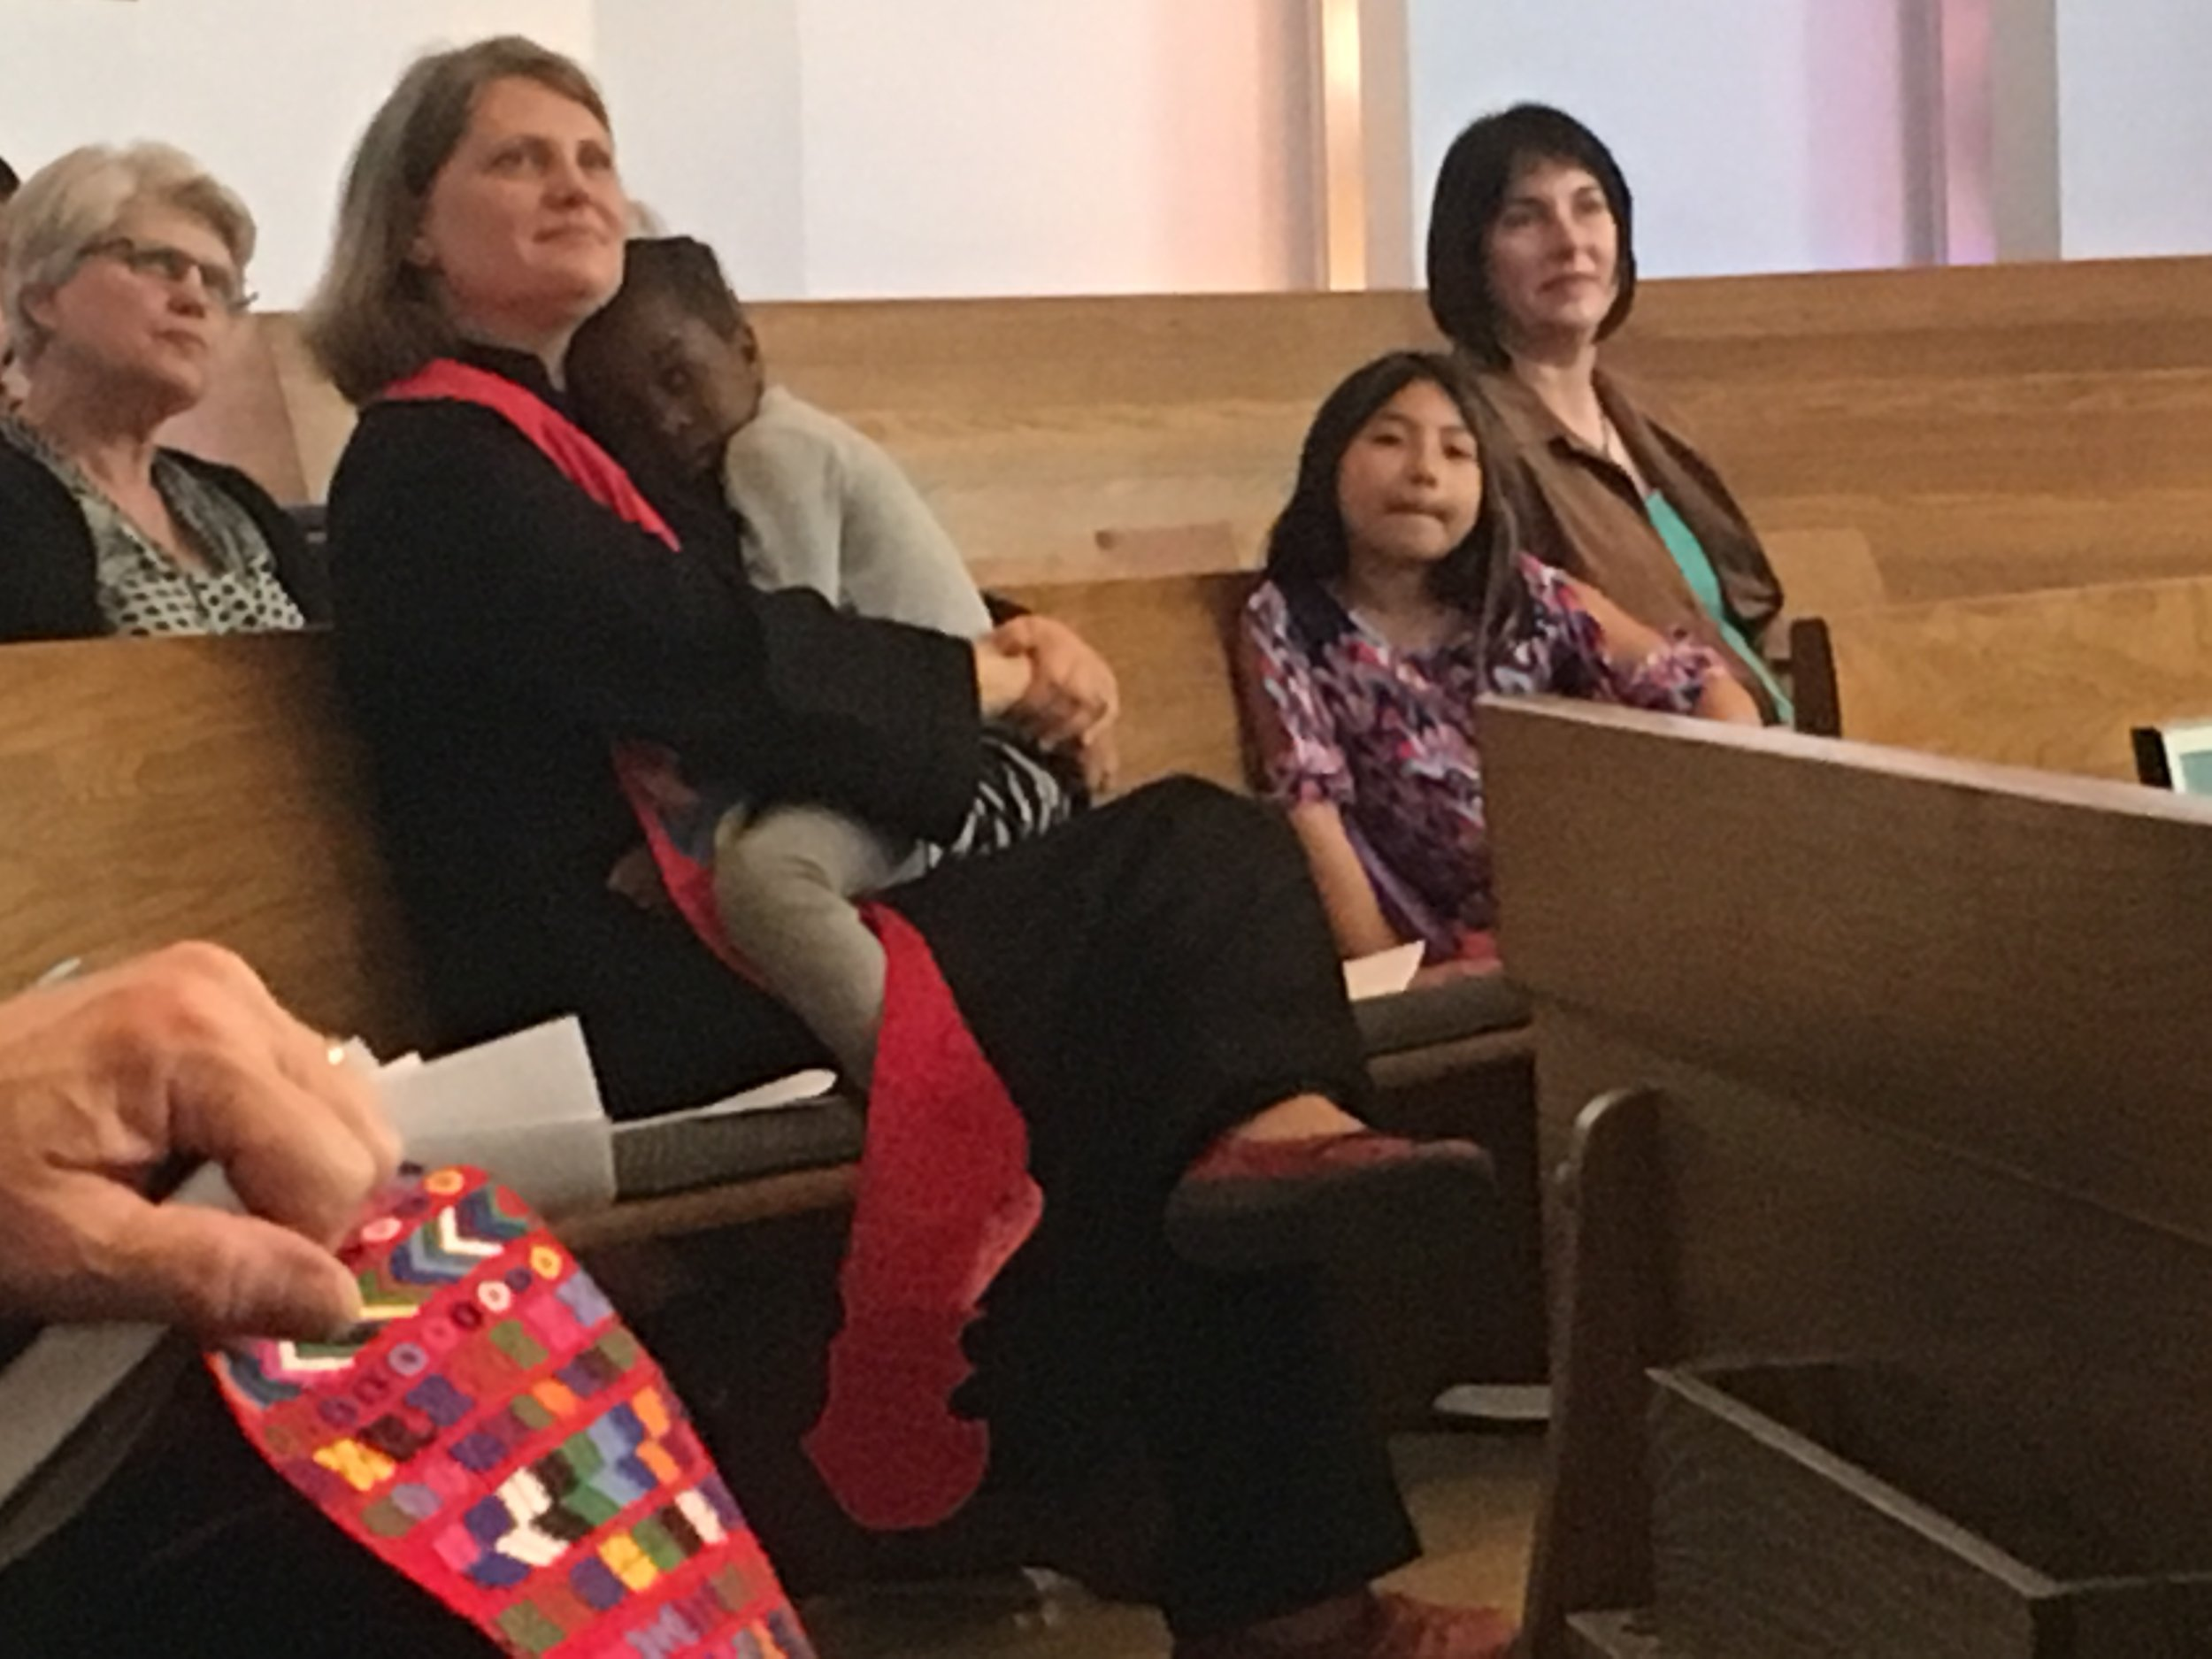 Rev. Hanna with her daughter Vivienne and Rebecca Souza with her daughter Lacey.